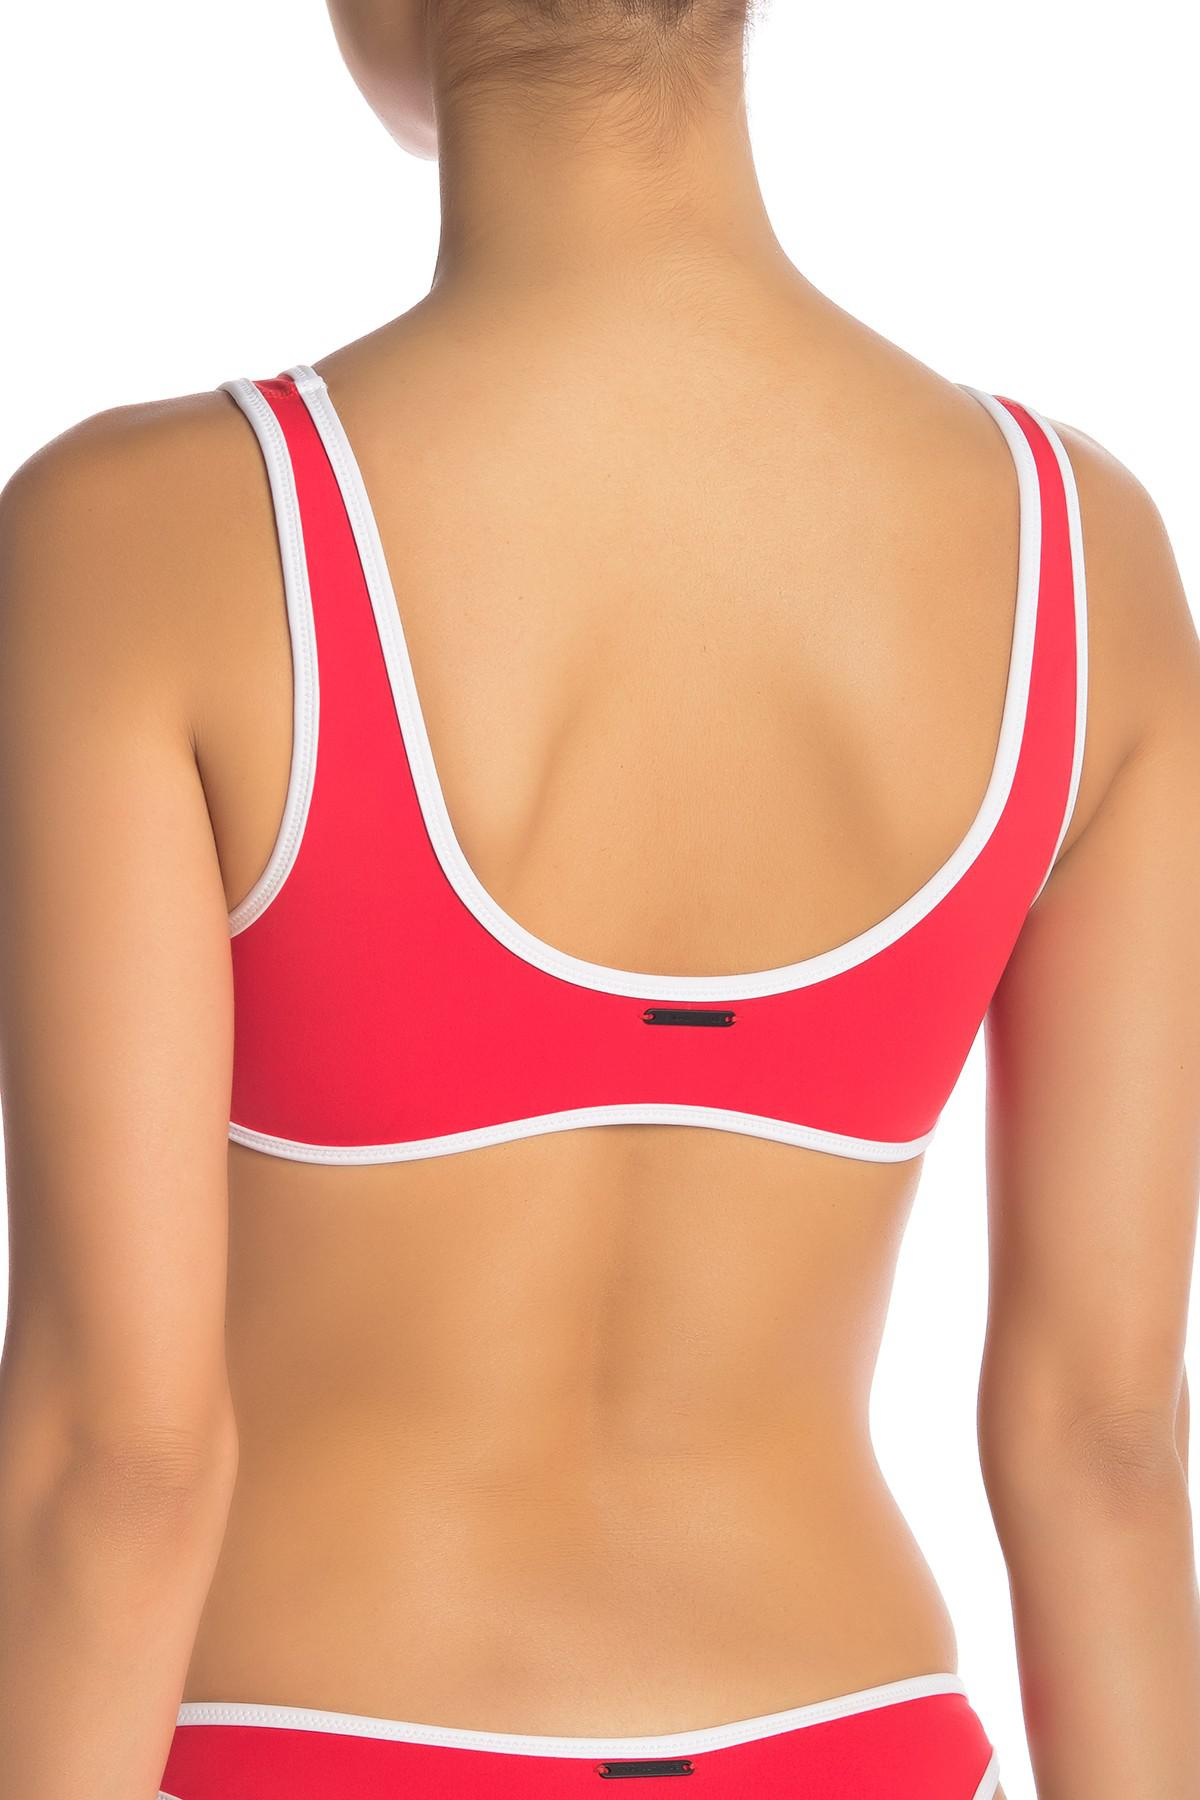 6dd31ade2197a Lyst - Kendall + Kylie Sporty Bralette Bikini Top in Red